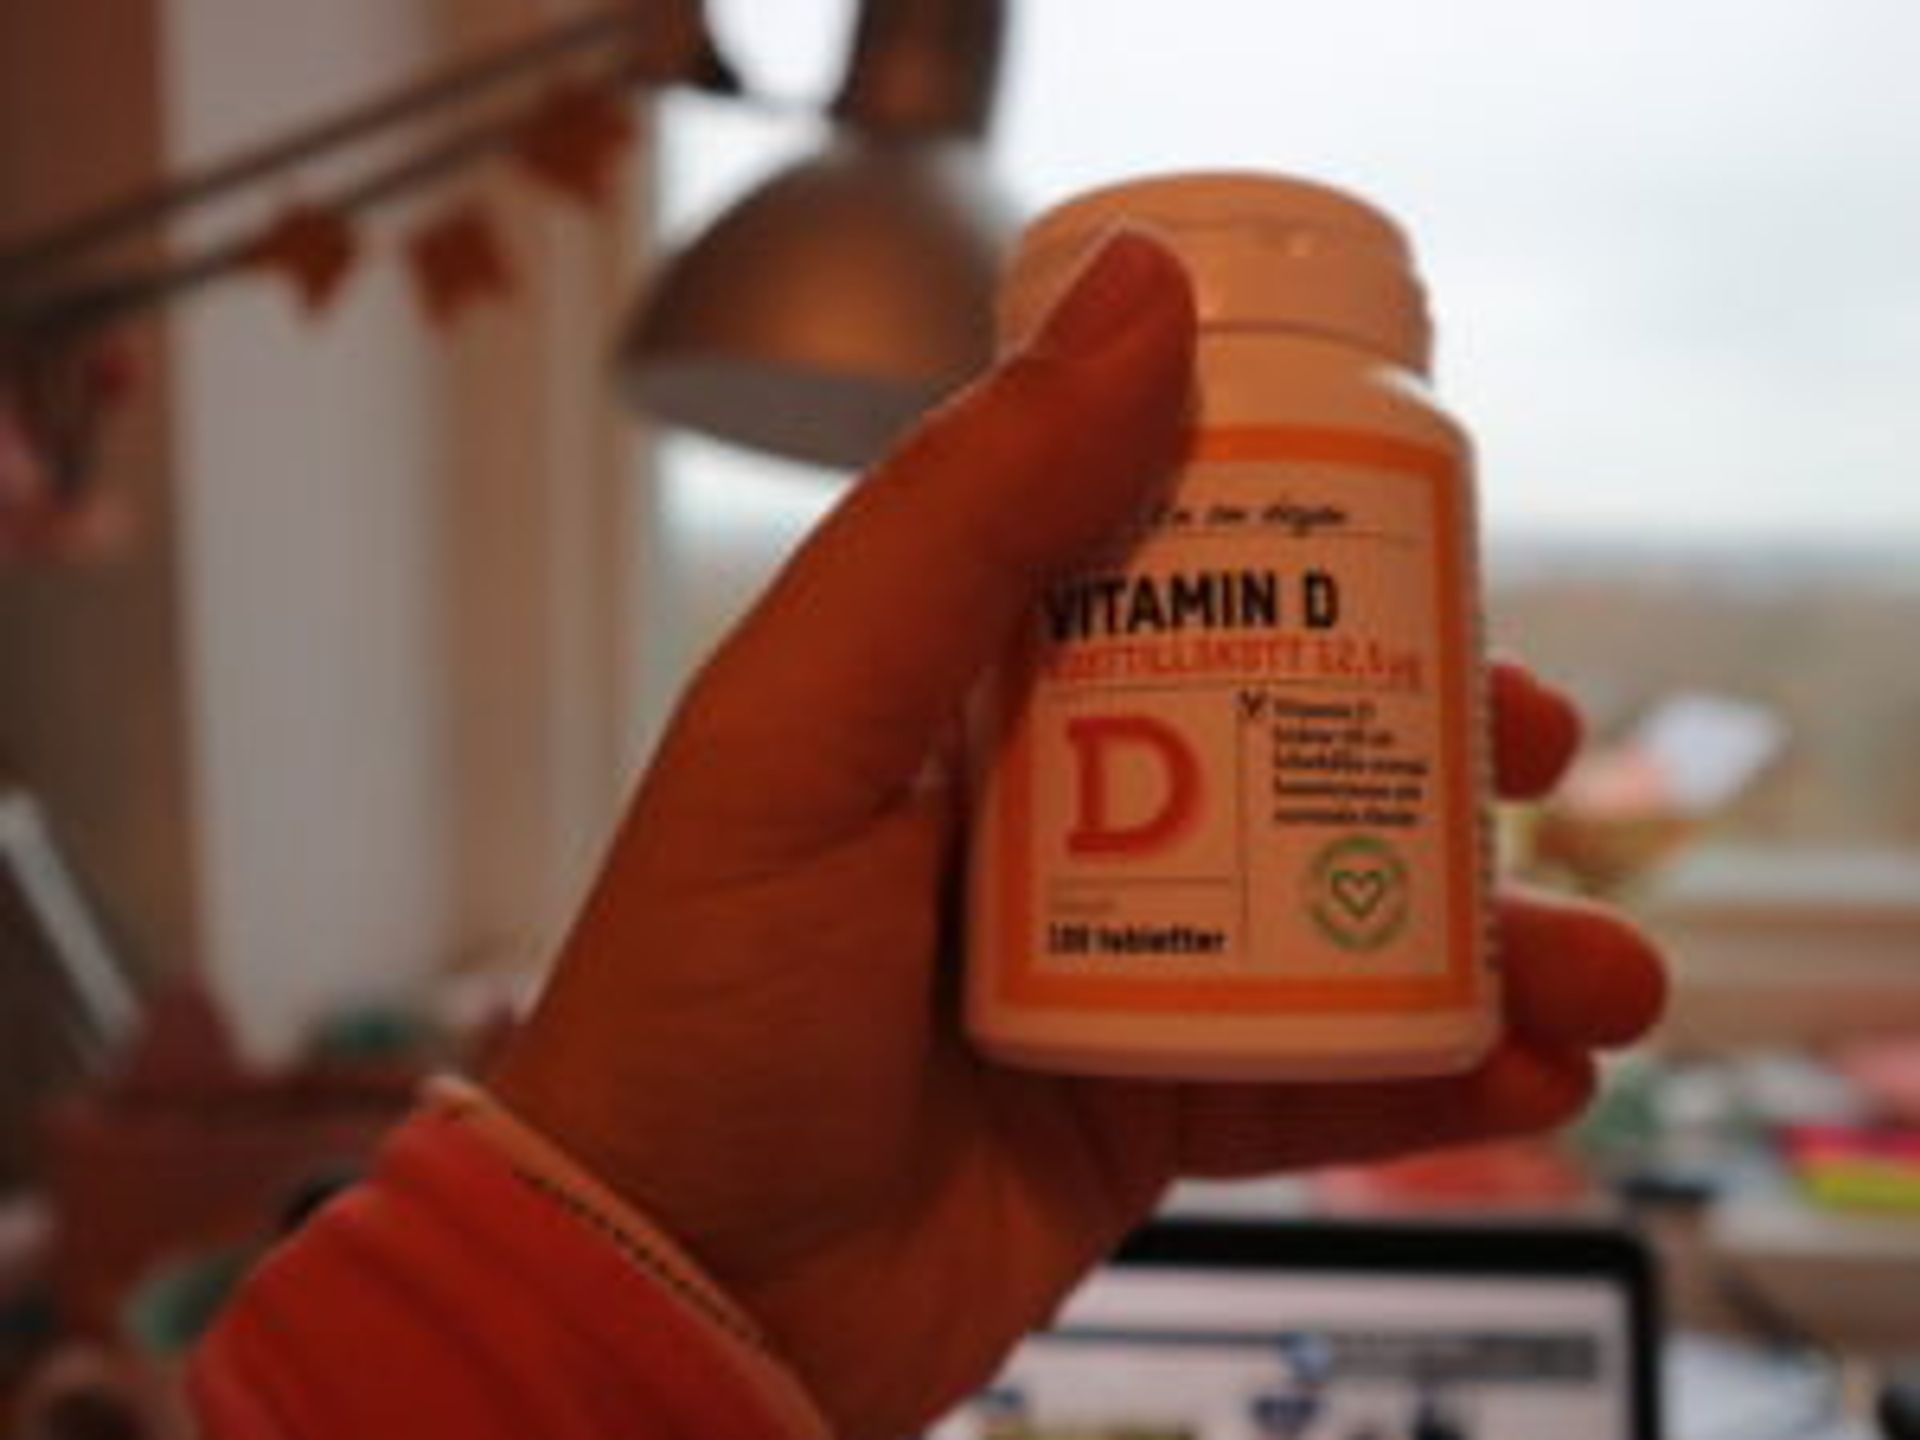 Close-up of a bottle of Vitamin D supplements.